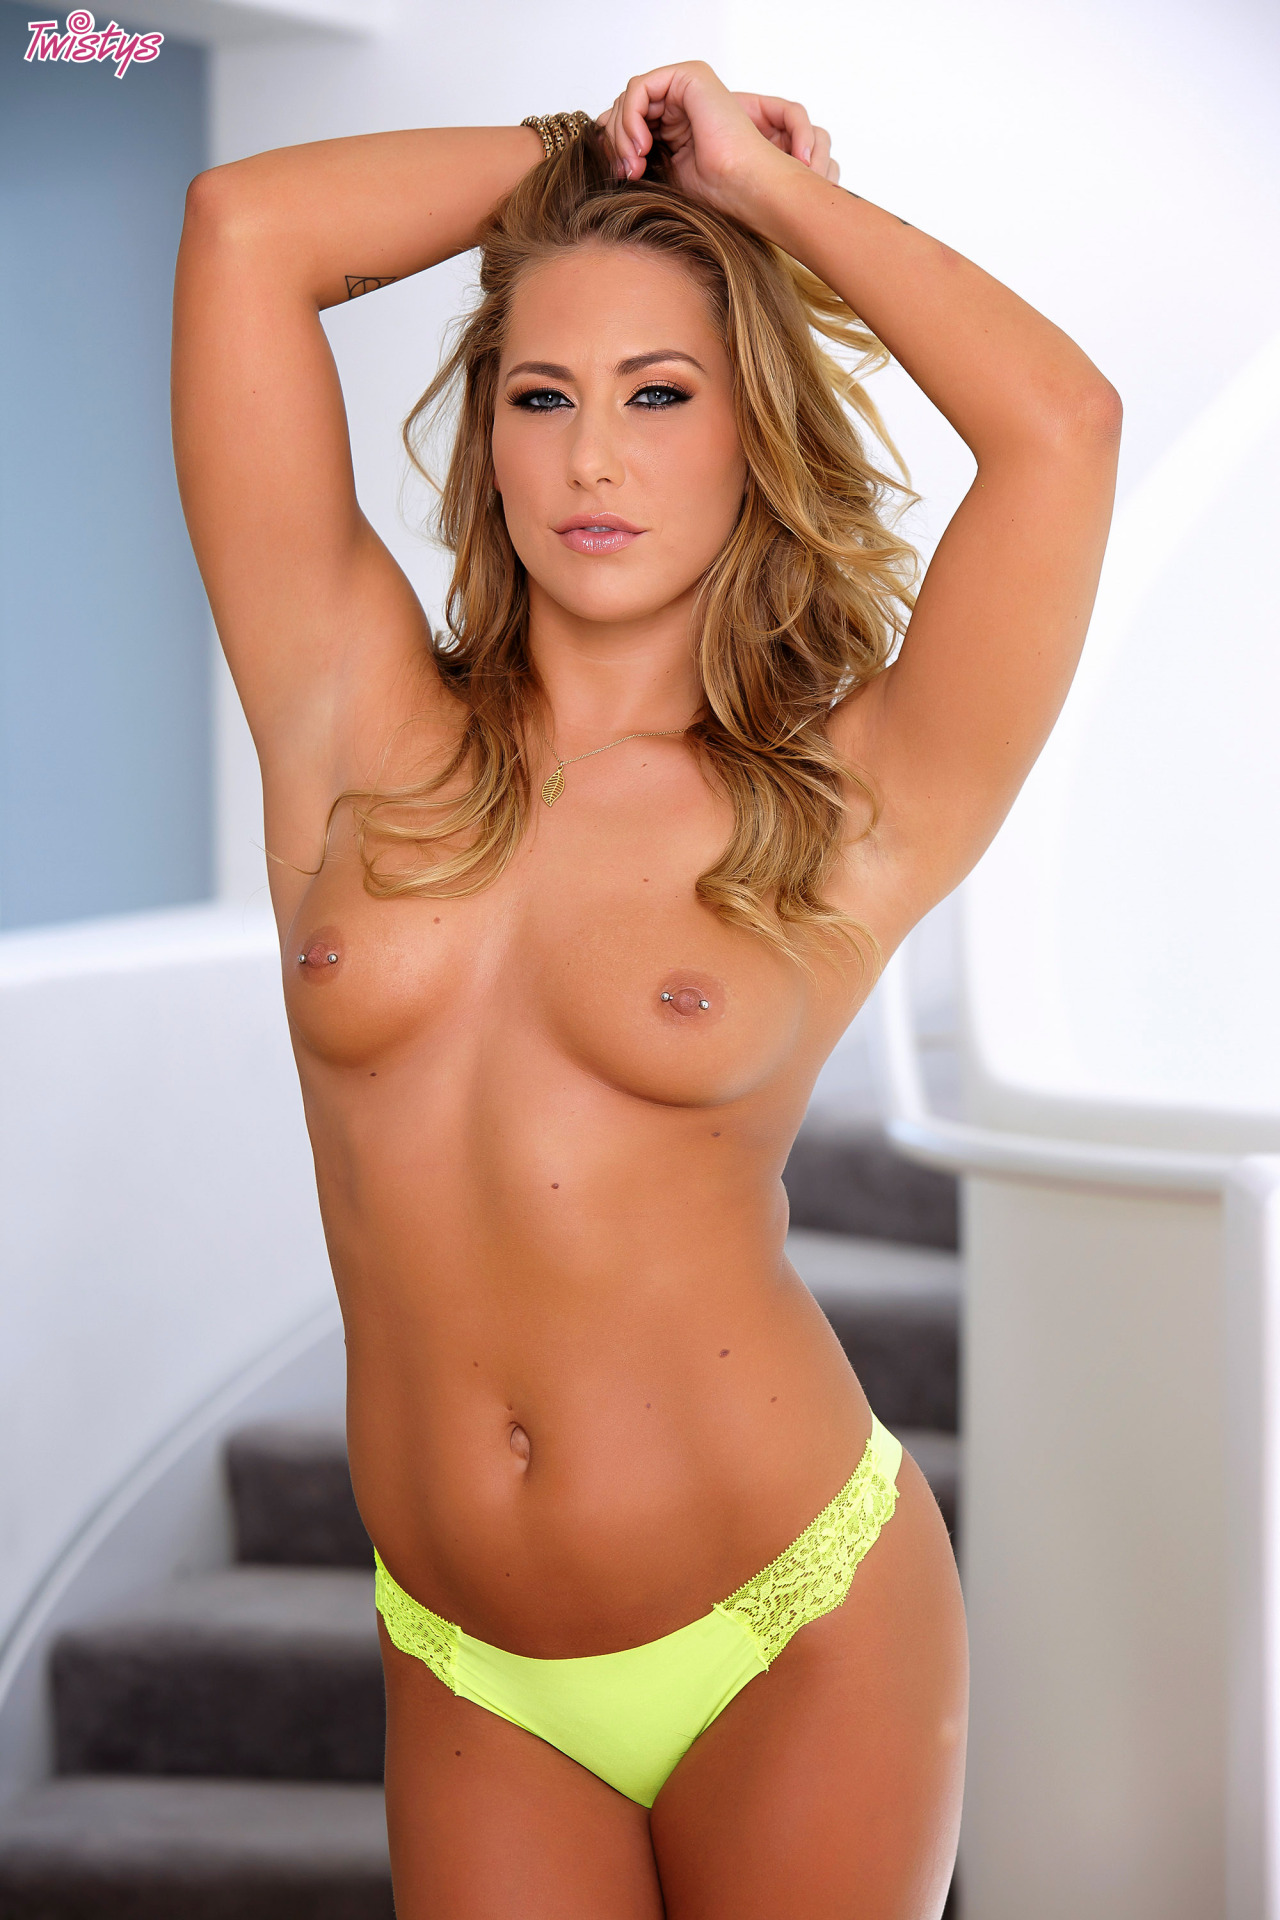 New Set Of Carter Cruise Up On Twistys 4